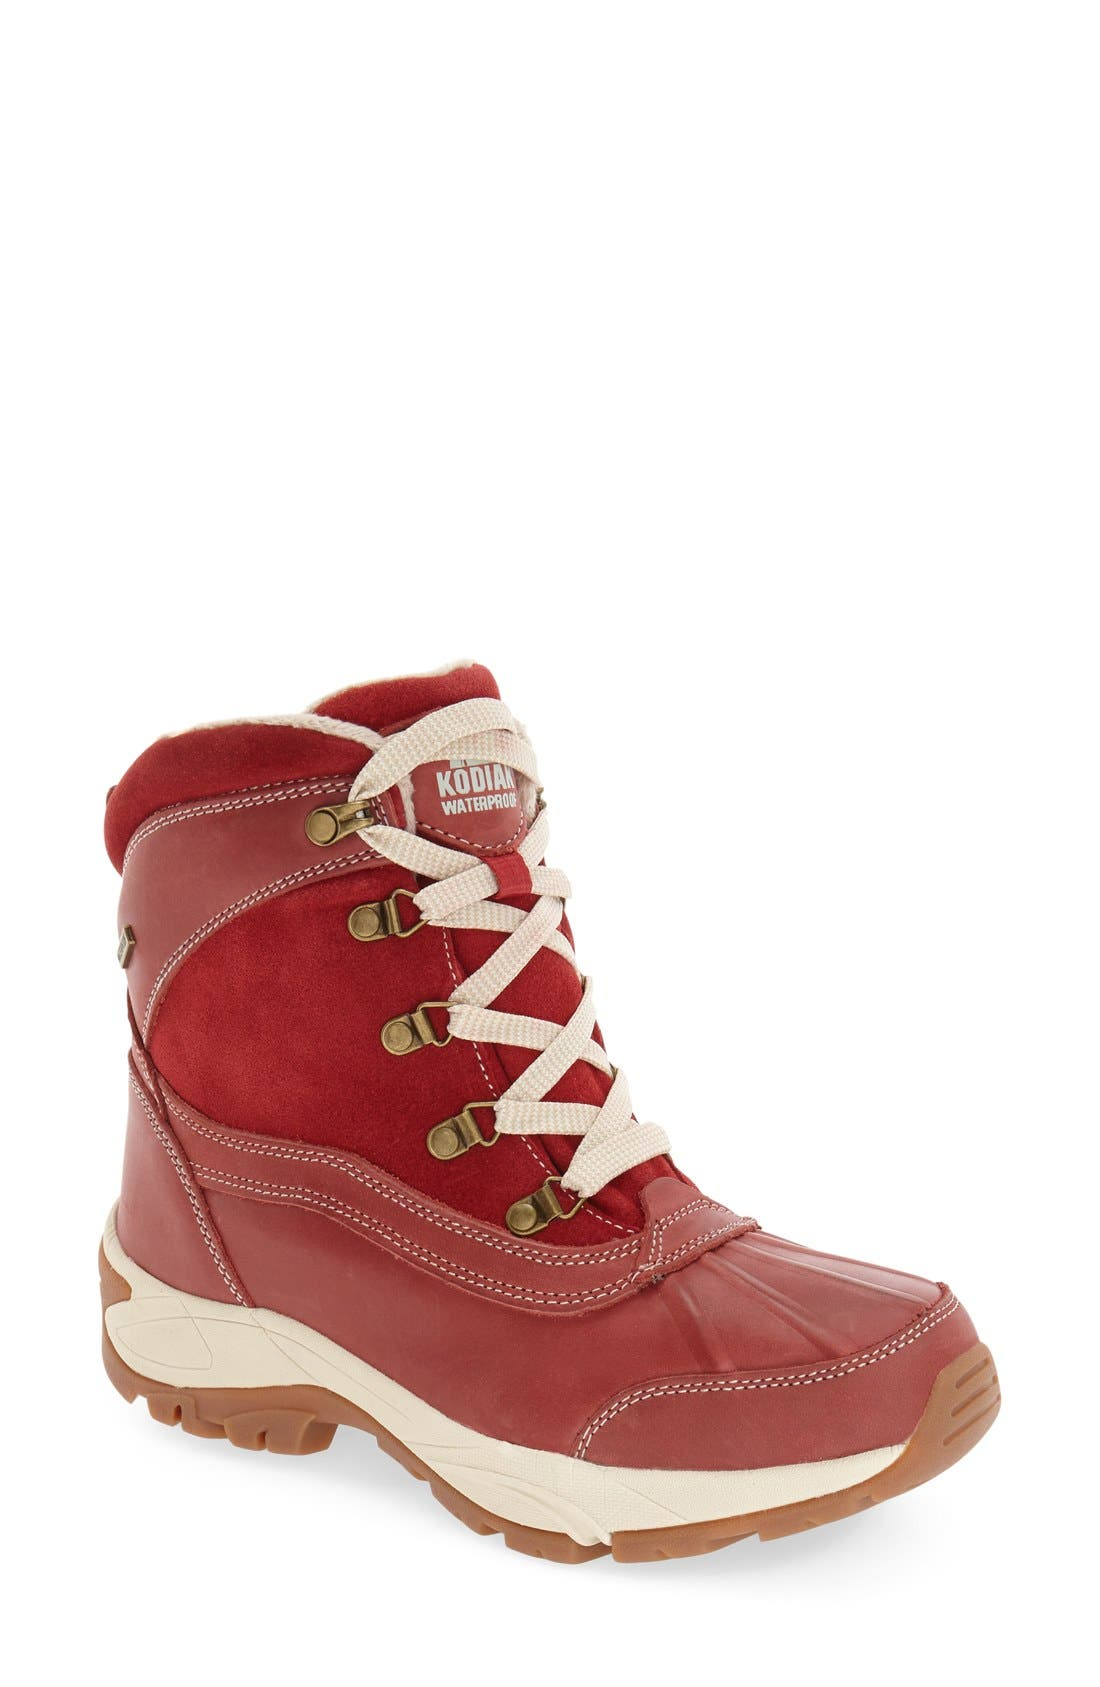 'Renee' Waterproof Insulated Winter Boot,                             Main thumbnail 1, color,                             Red Leather